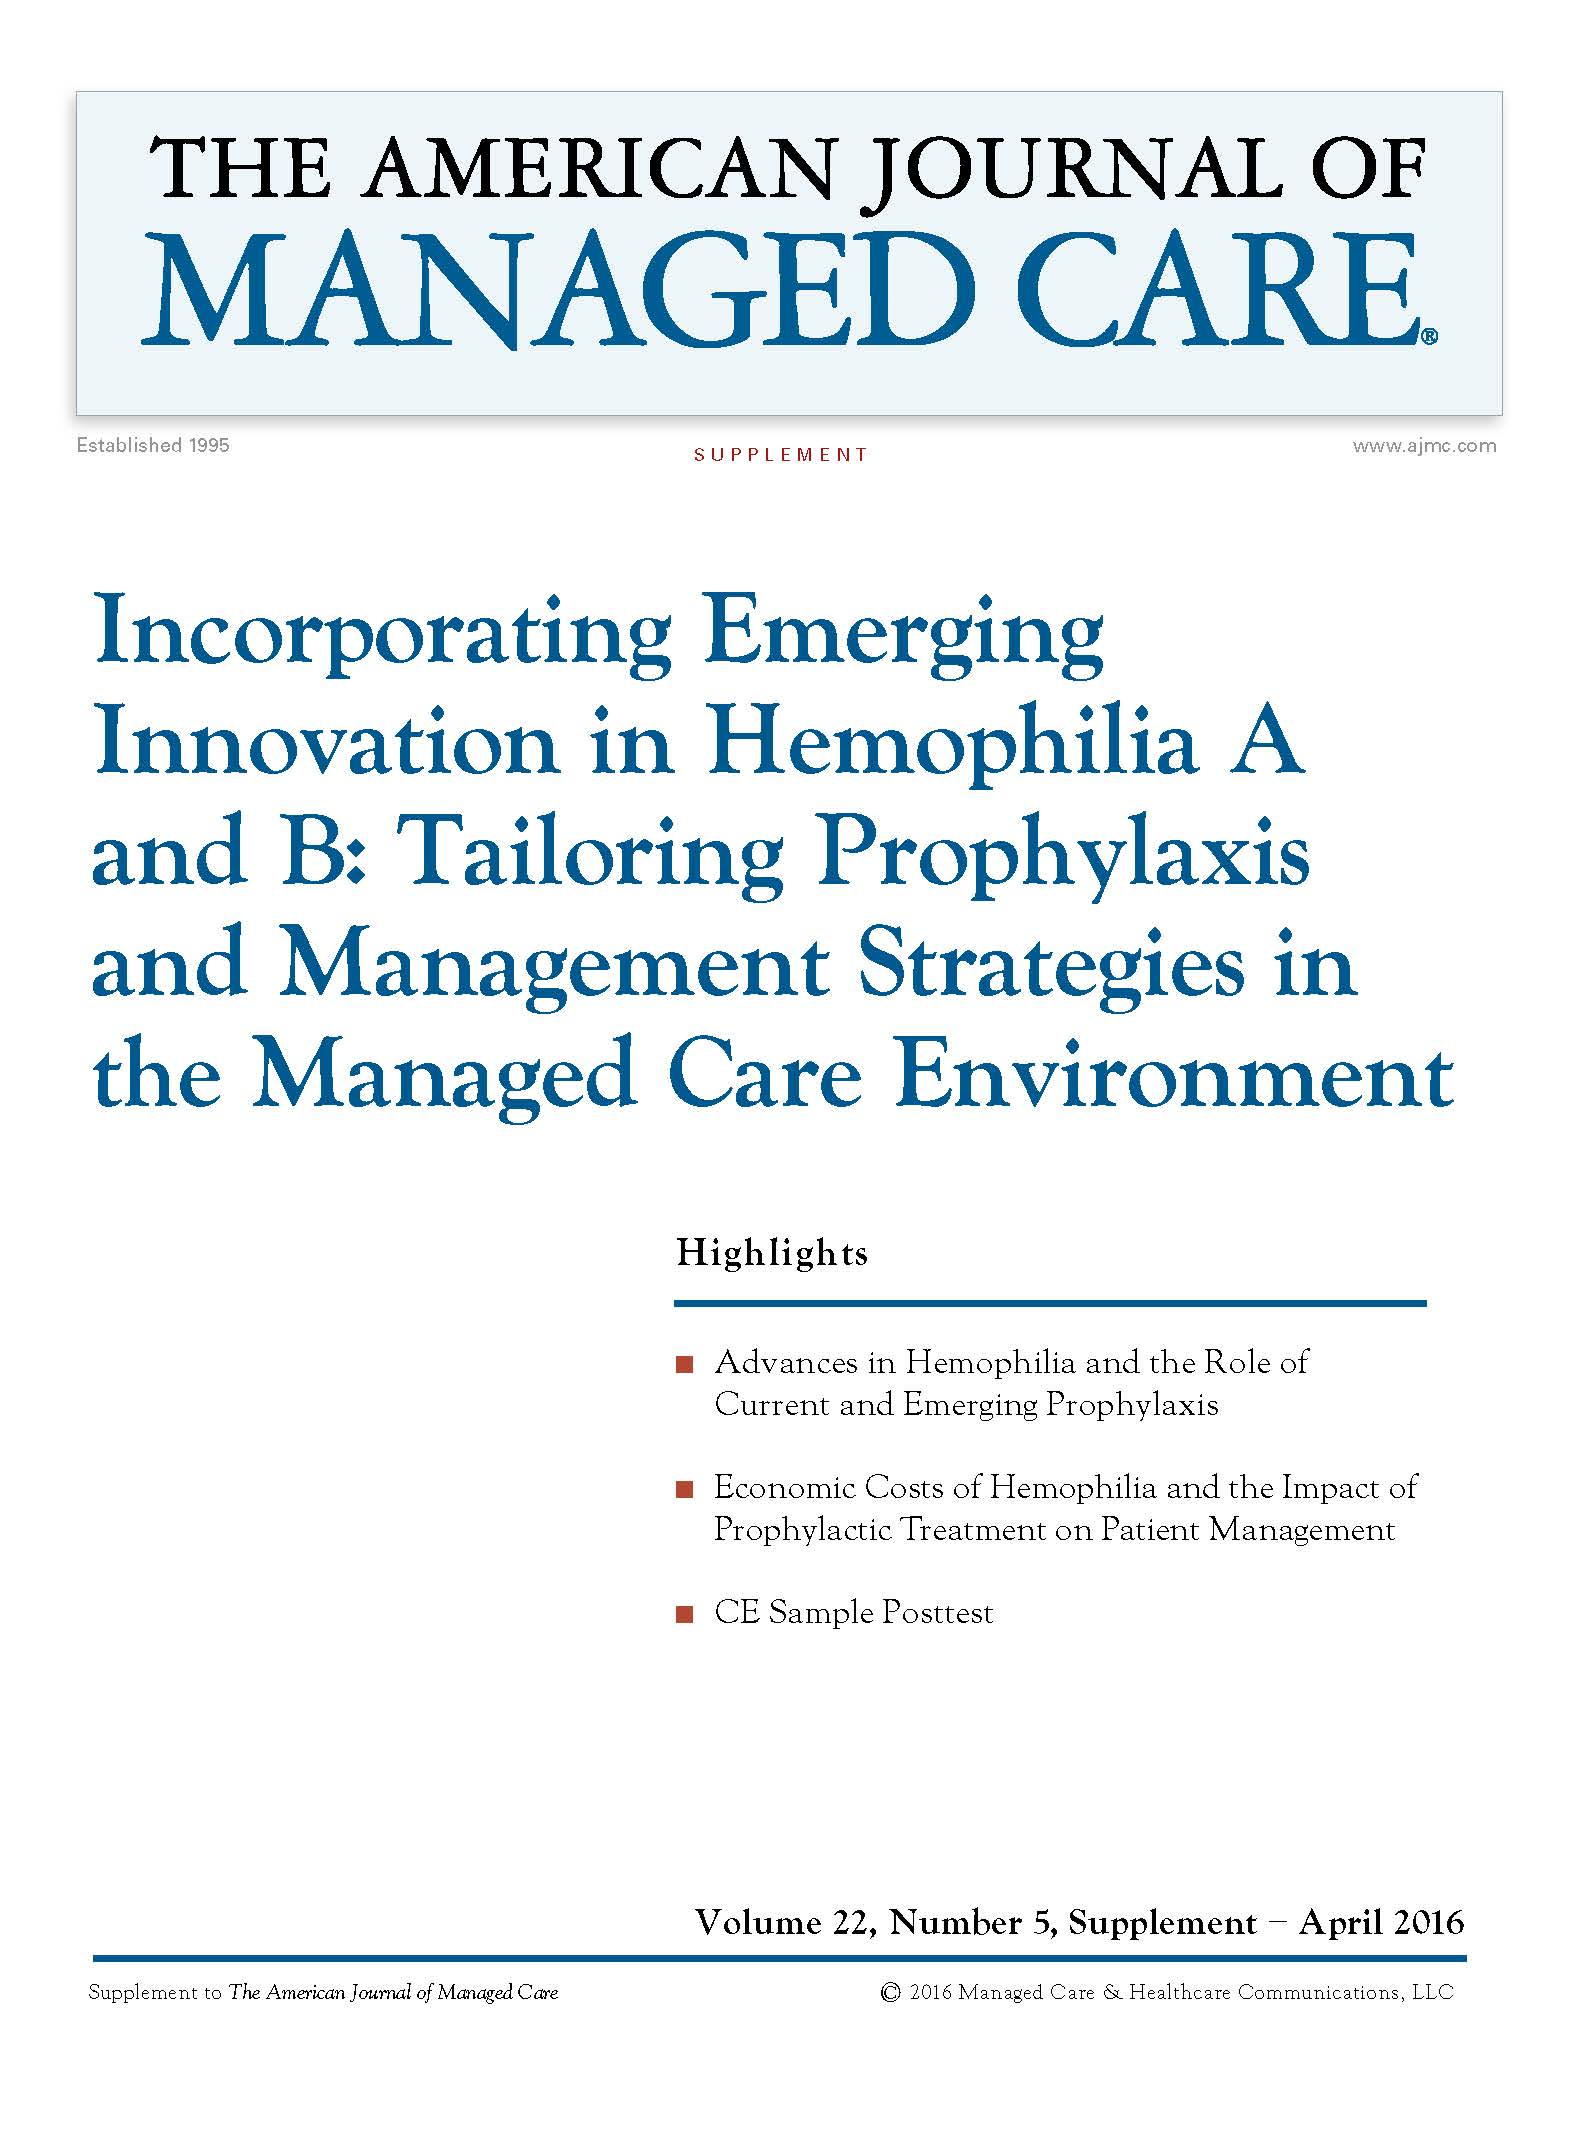 Incorporating Emerging Innovation in Hemophilia A  and B: Tailoring Prophylaxis  and Management Strategies in the Managed Care Environment